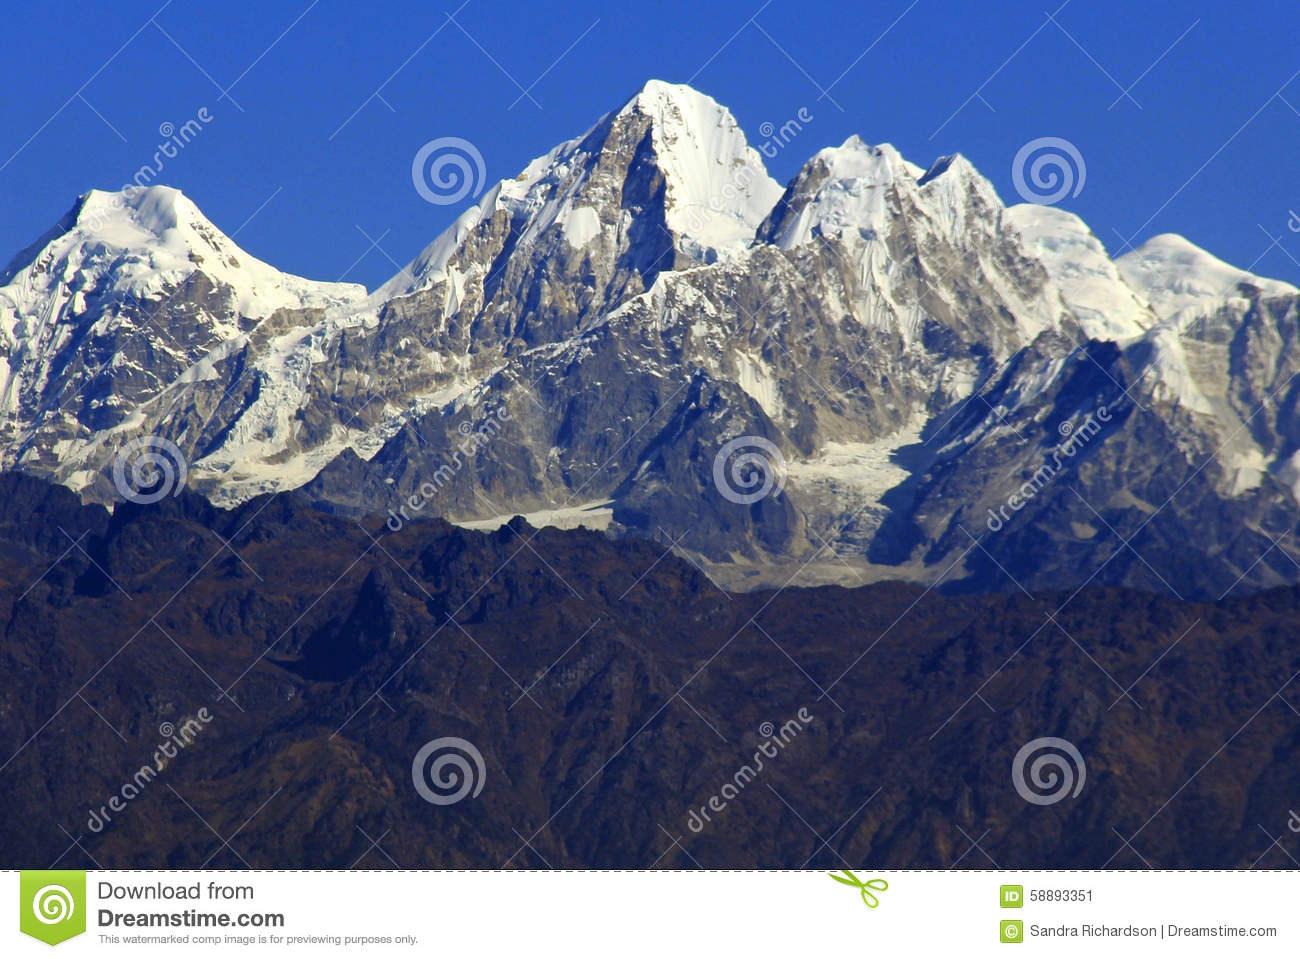 himalayas-snow-capped-mountain-peaks-against-perfect-blue-sky-58893351[1]